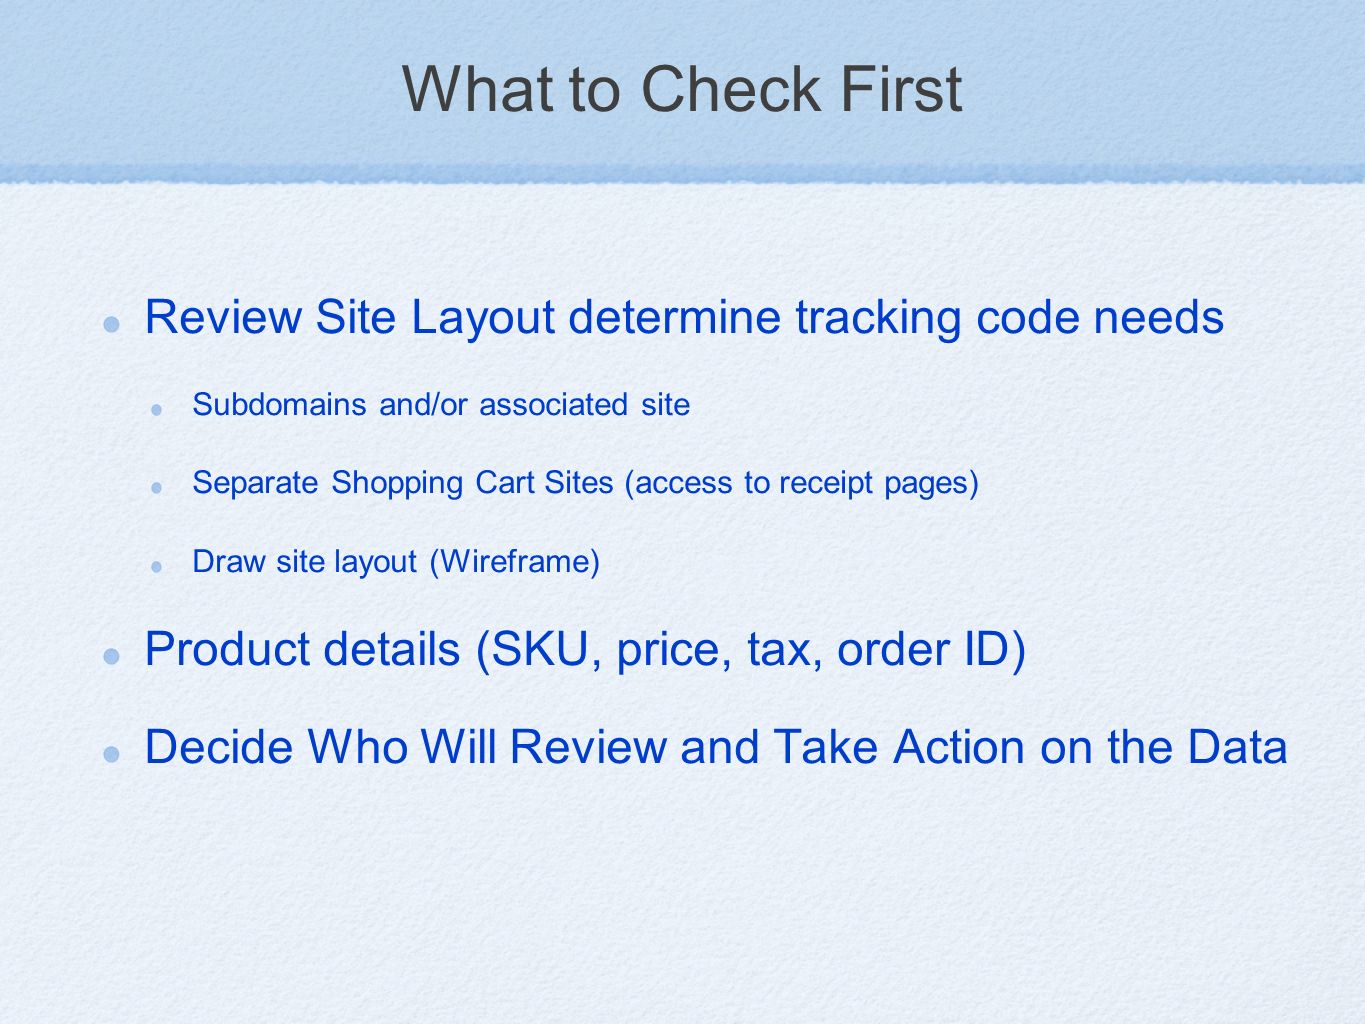 What to Check First Review Site Layout determine tracking code needs Subdomains and/or associated site Separate Shopping Cart Sites (access to receipt pages) Draw site layout (Wireframe) Product details (SKU, price, tax, order ID) Decide Who Will Review and Take Action on the Data